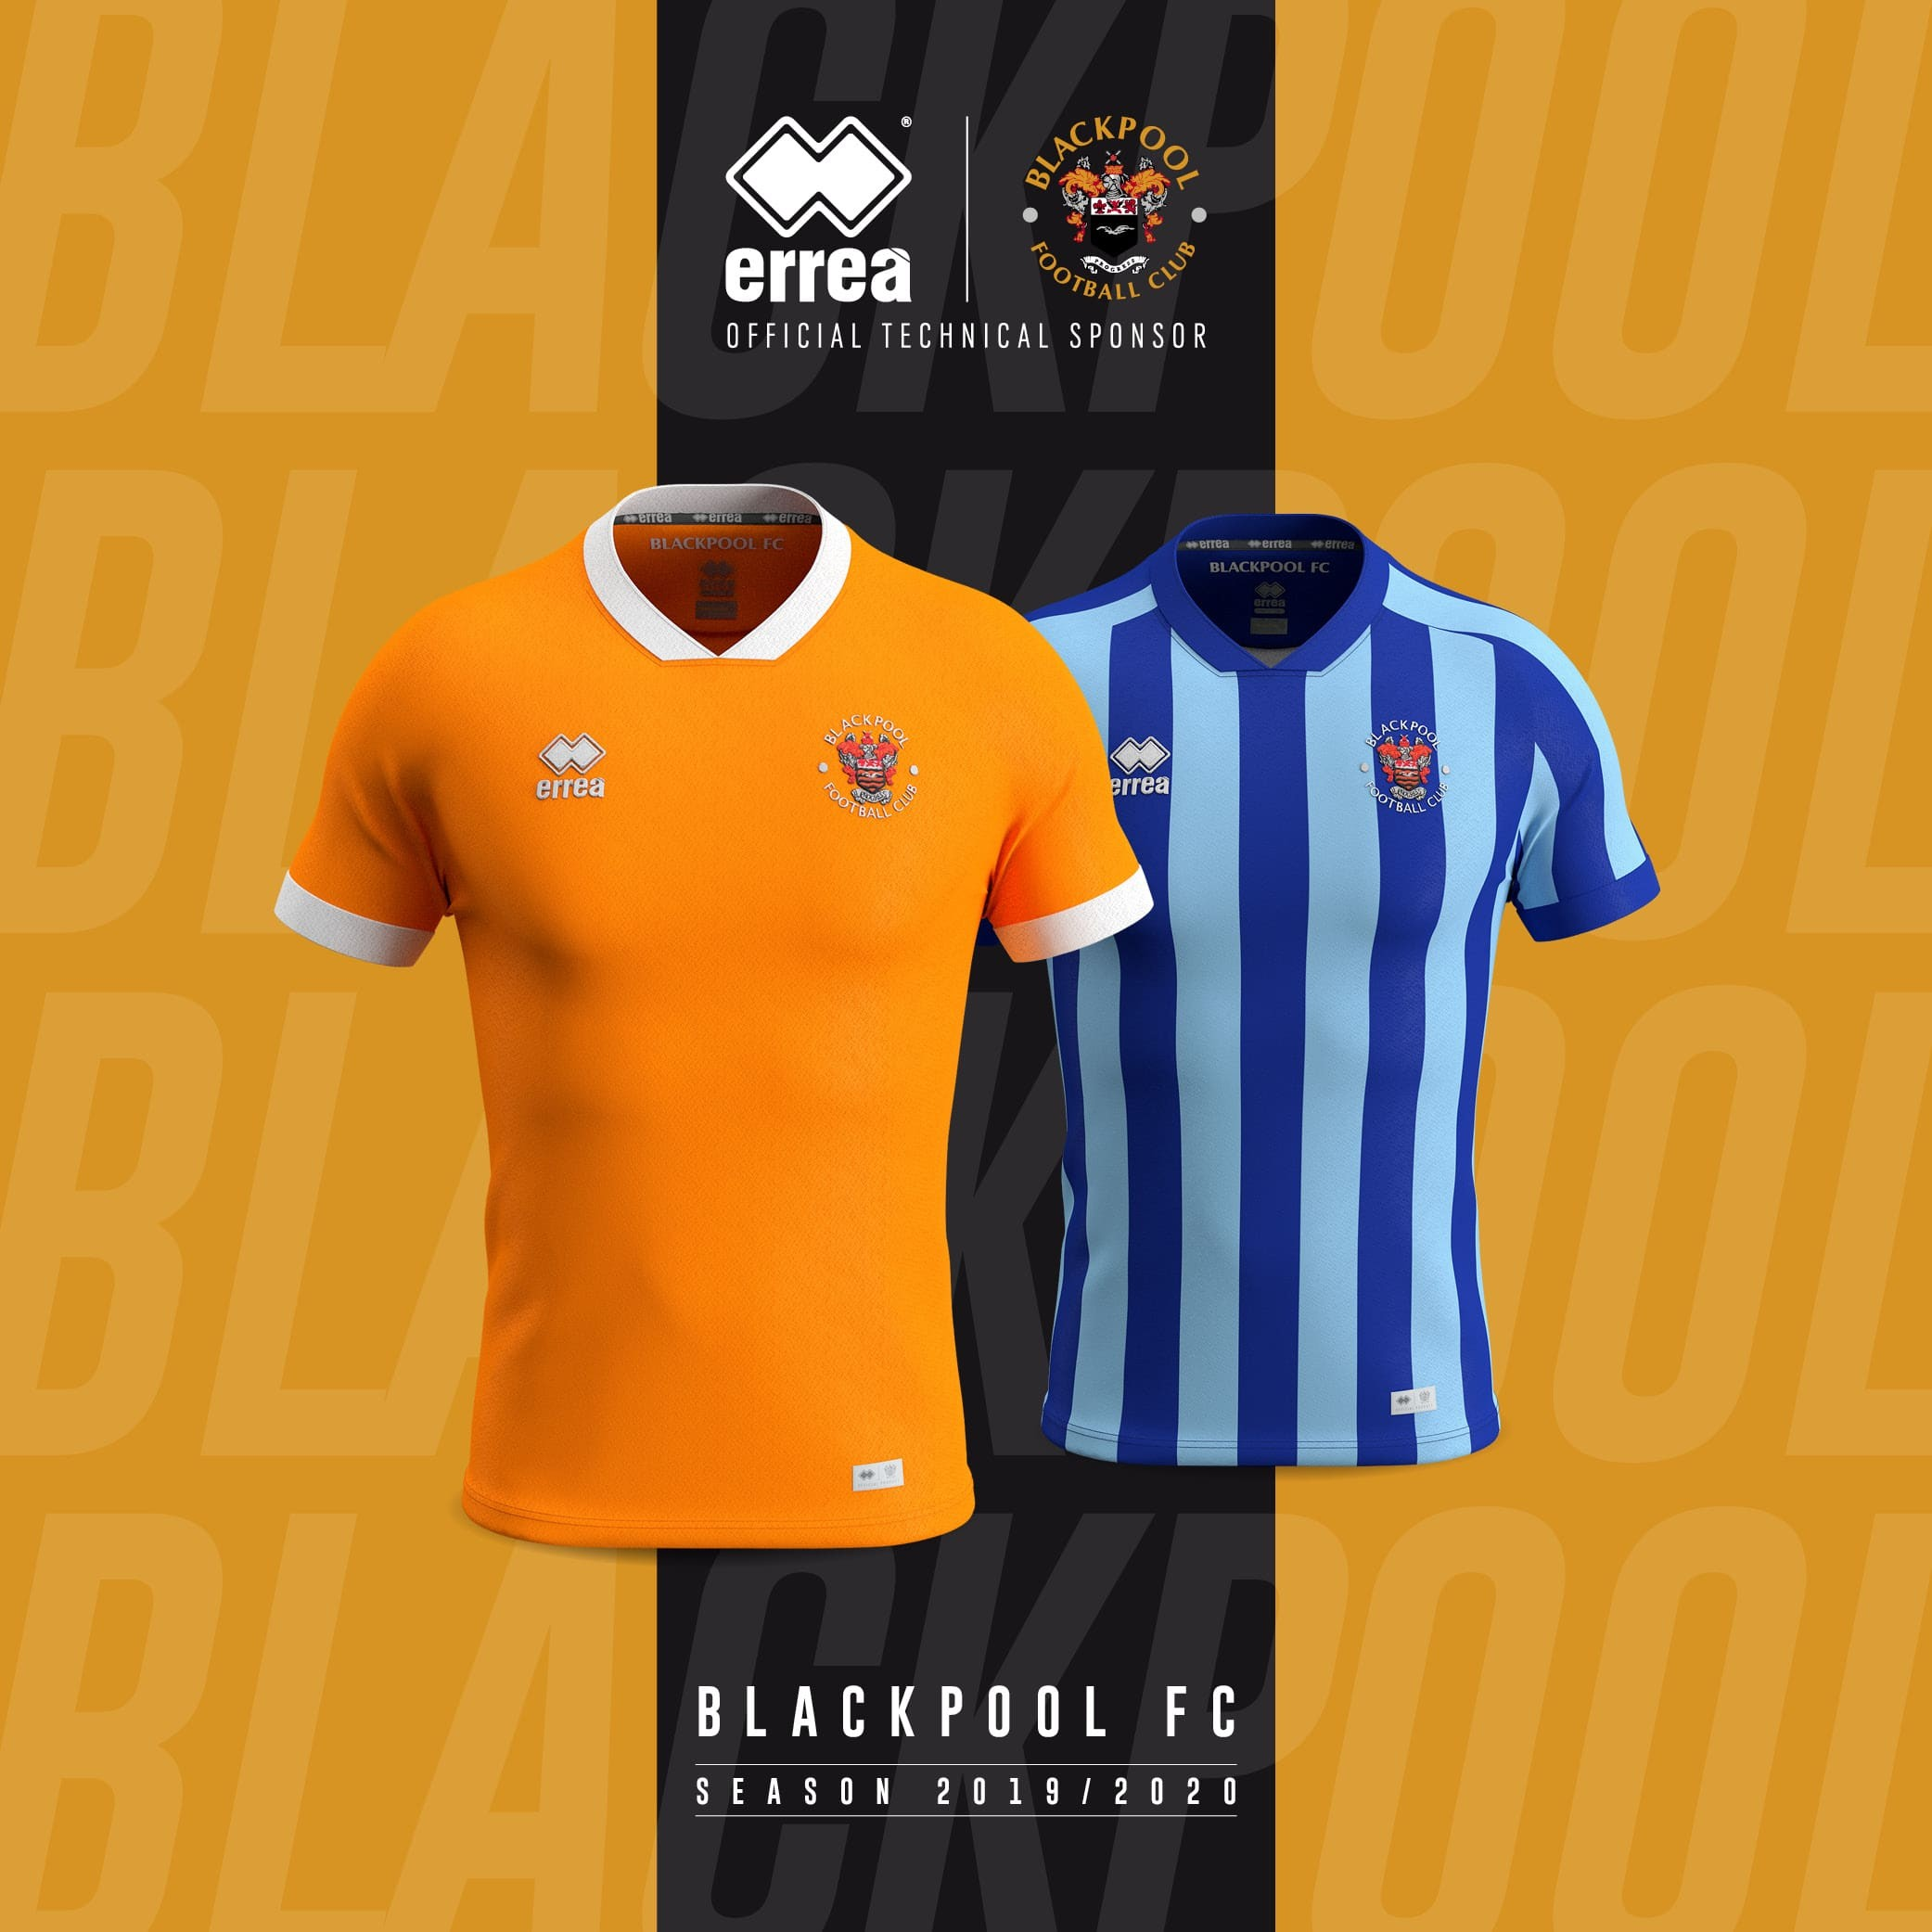 News Elegance And Simplicity For Blackpool Fc S New Official Kits For 2019 2020 Errea